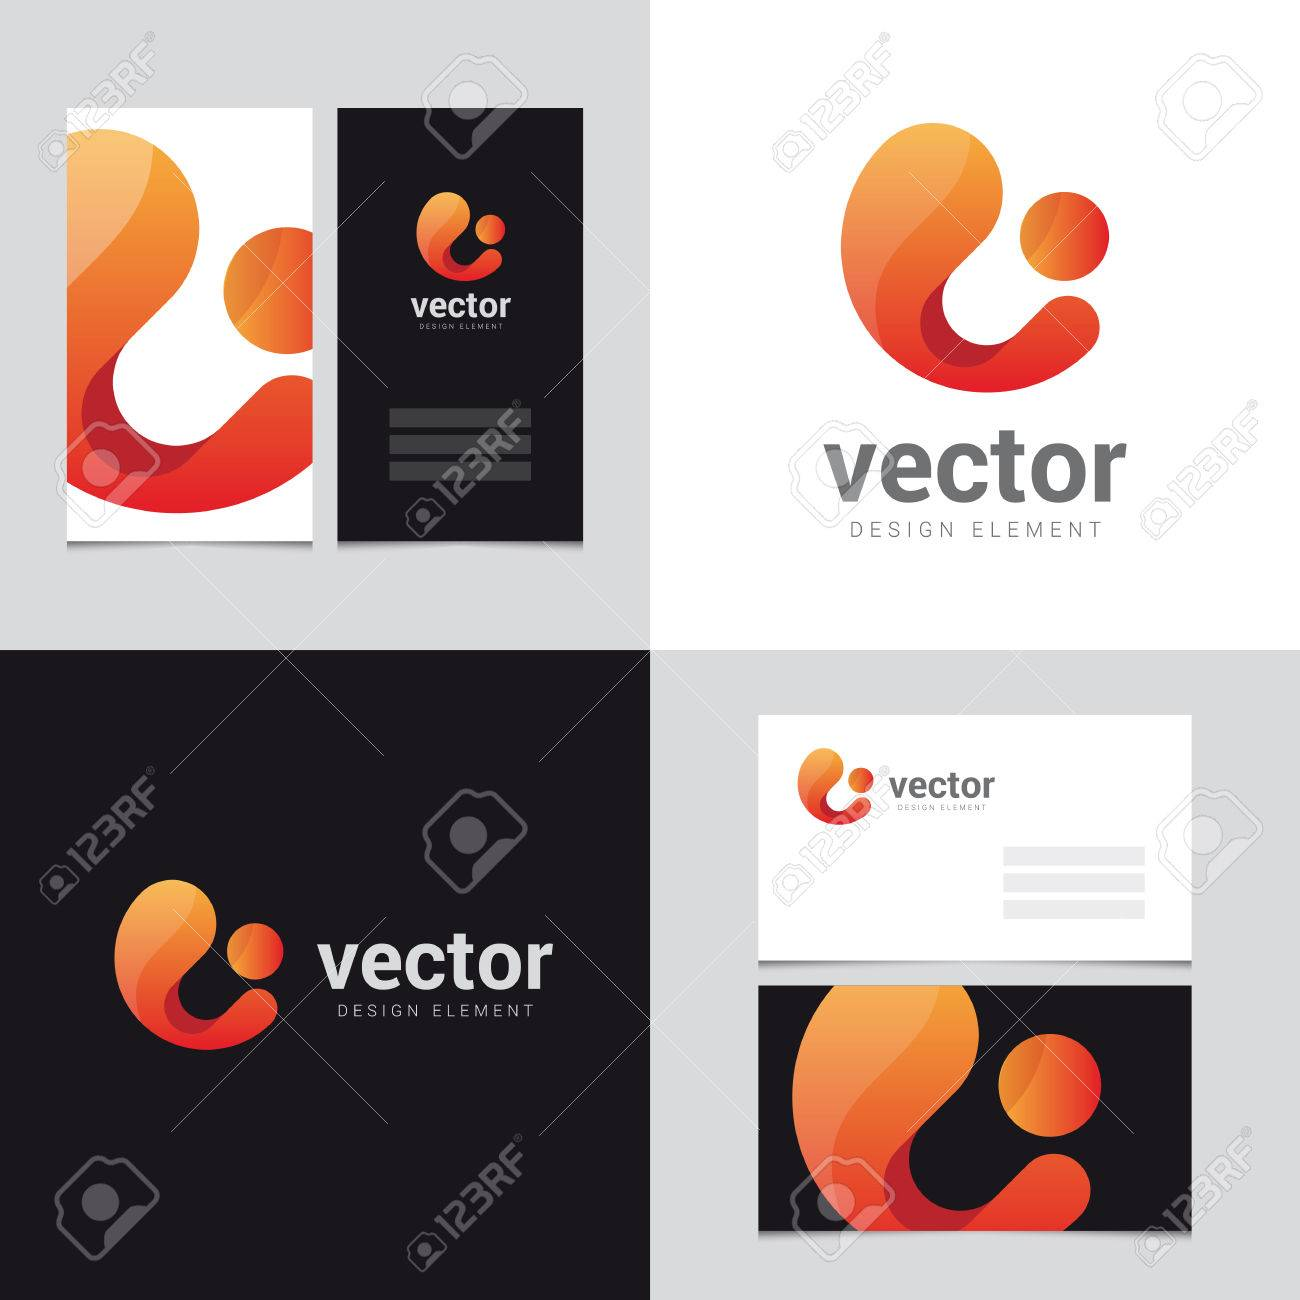 Business cards logo design images free business cards logo design element with two business cards template 22 vector logo design element with two business magicingreecefo Image collections